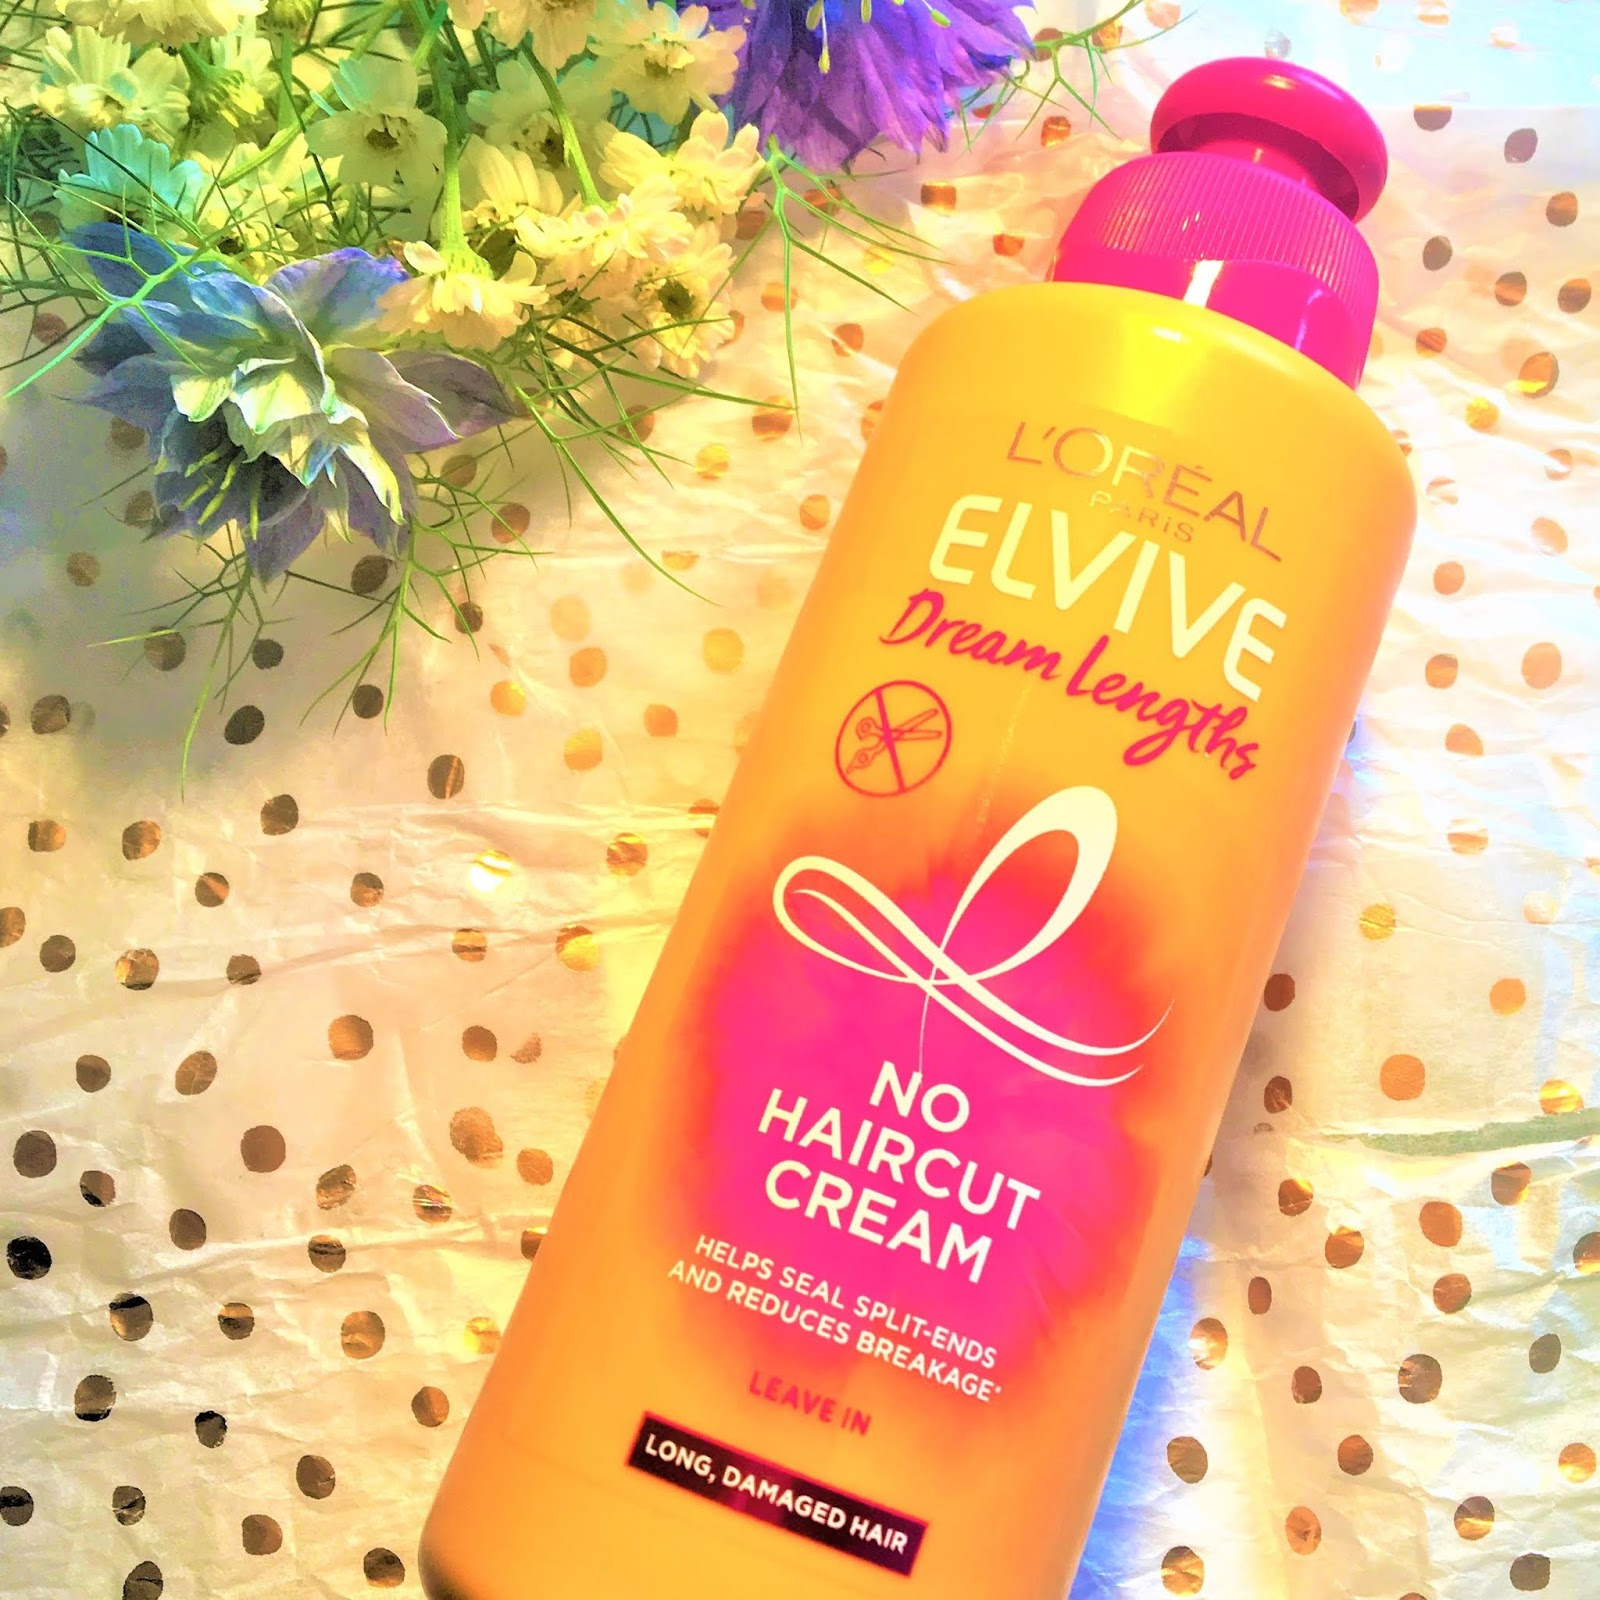 L'oreal Elvive Dream Lengths No Haircut Cream